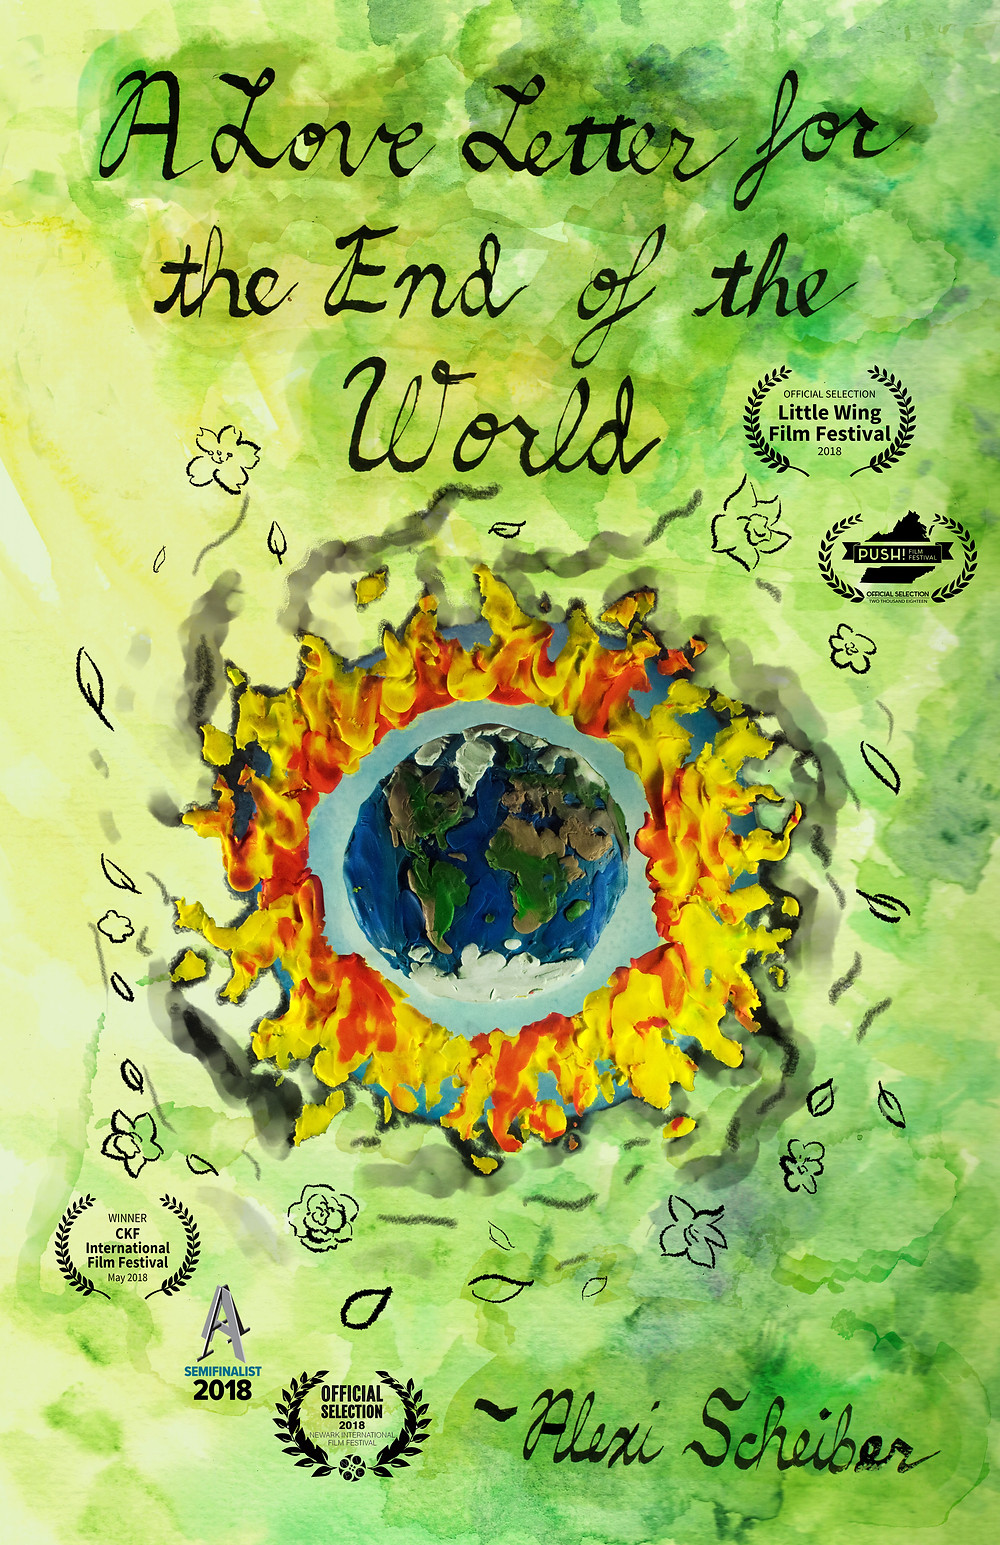 A Love Letter for the End of the World short film poster